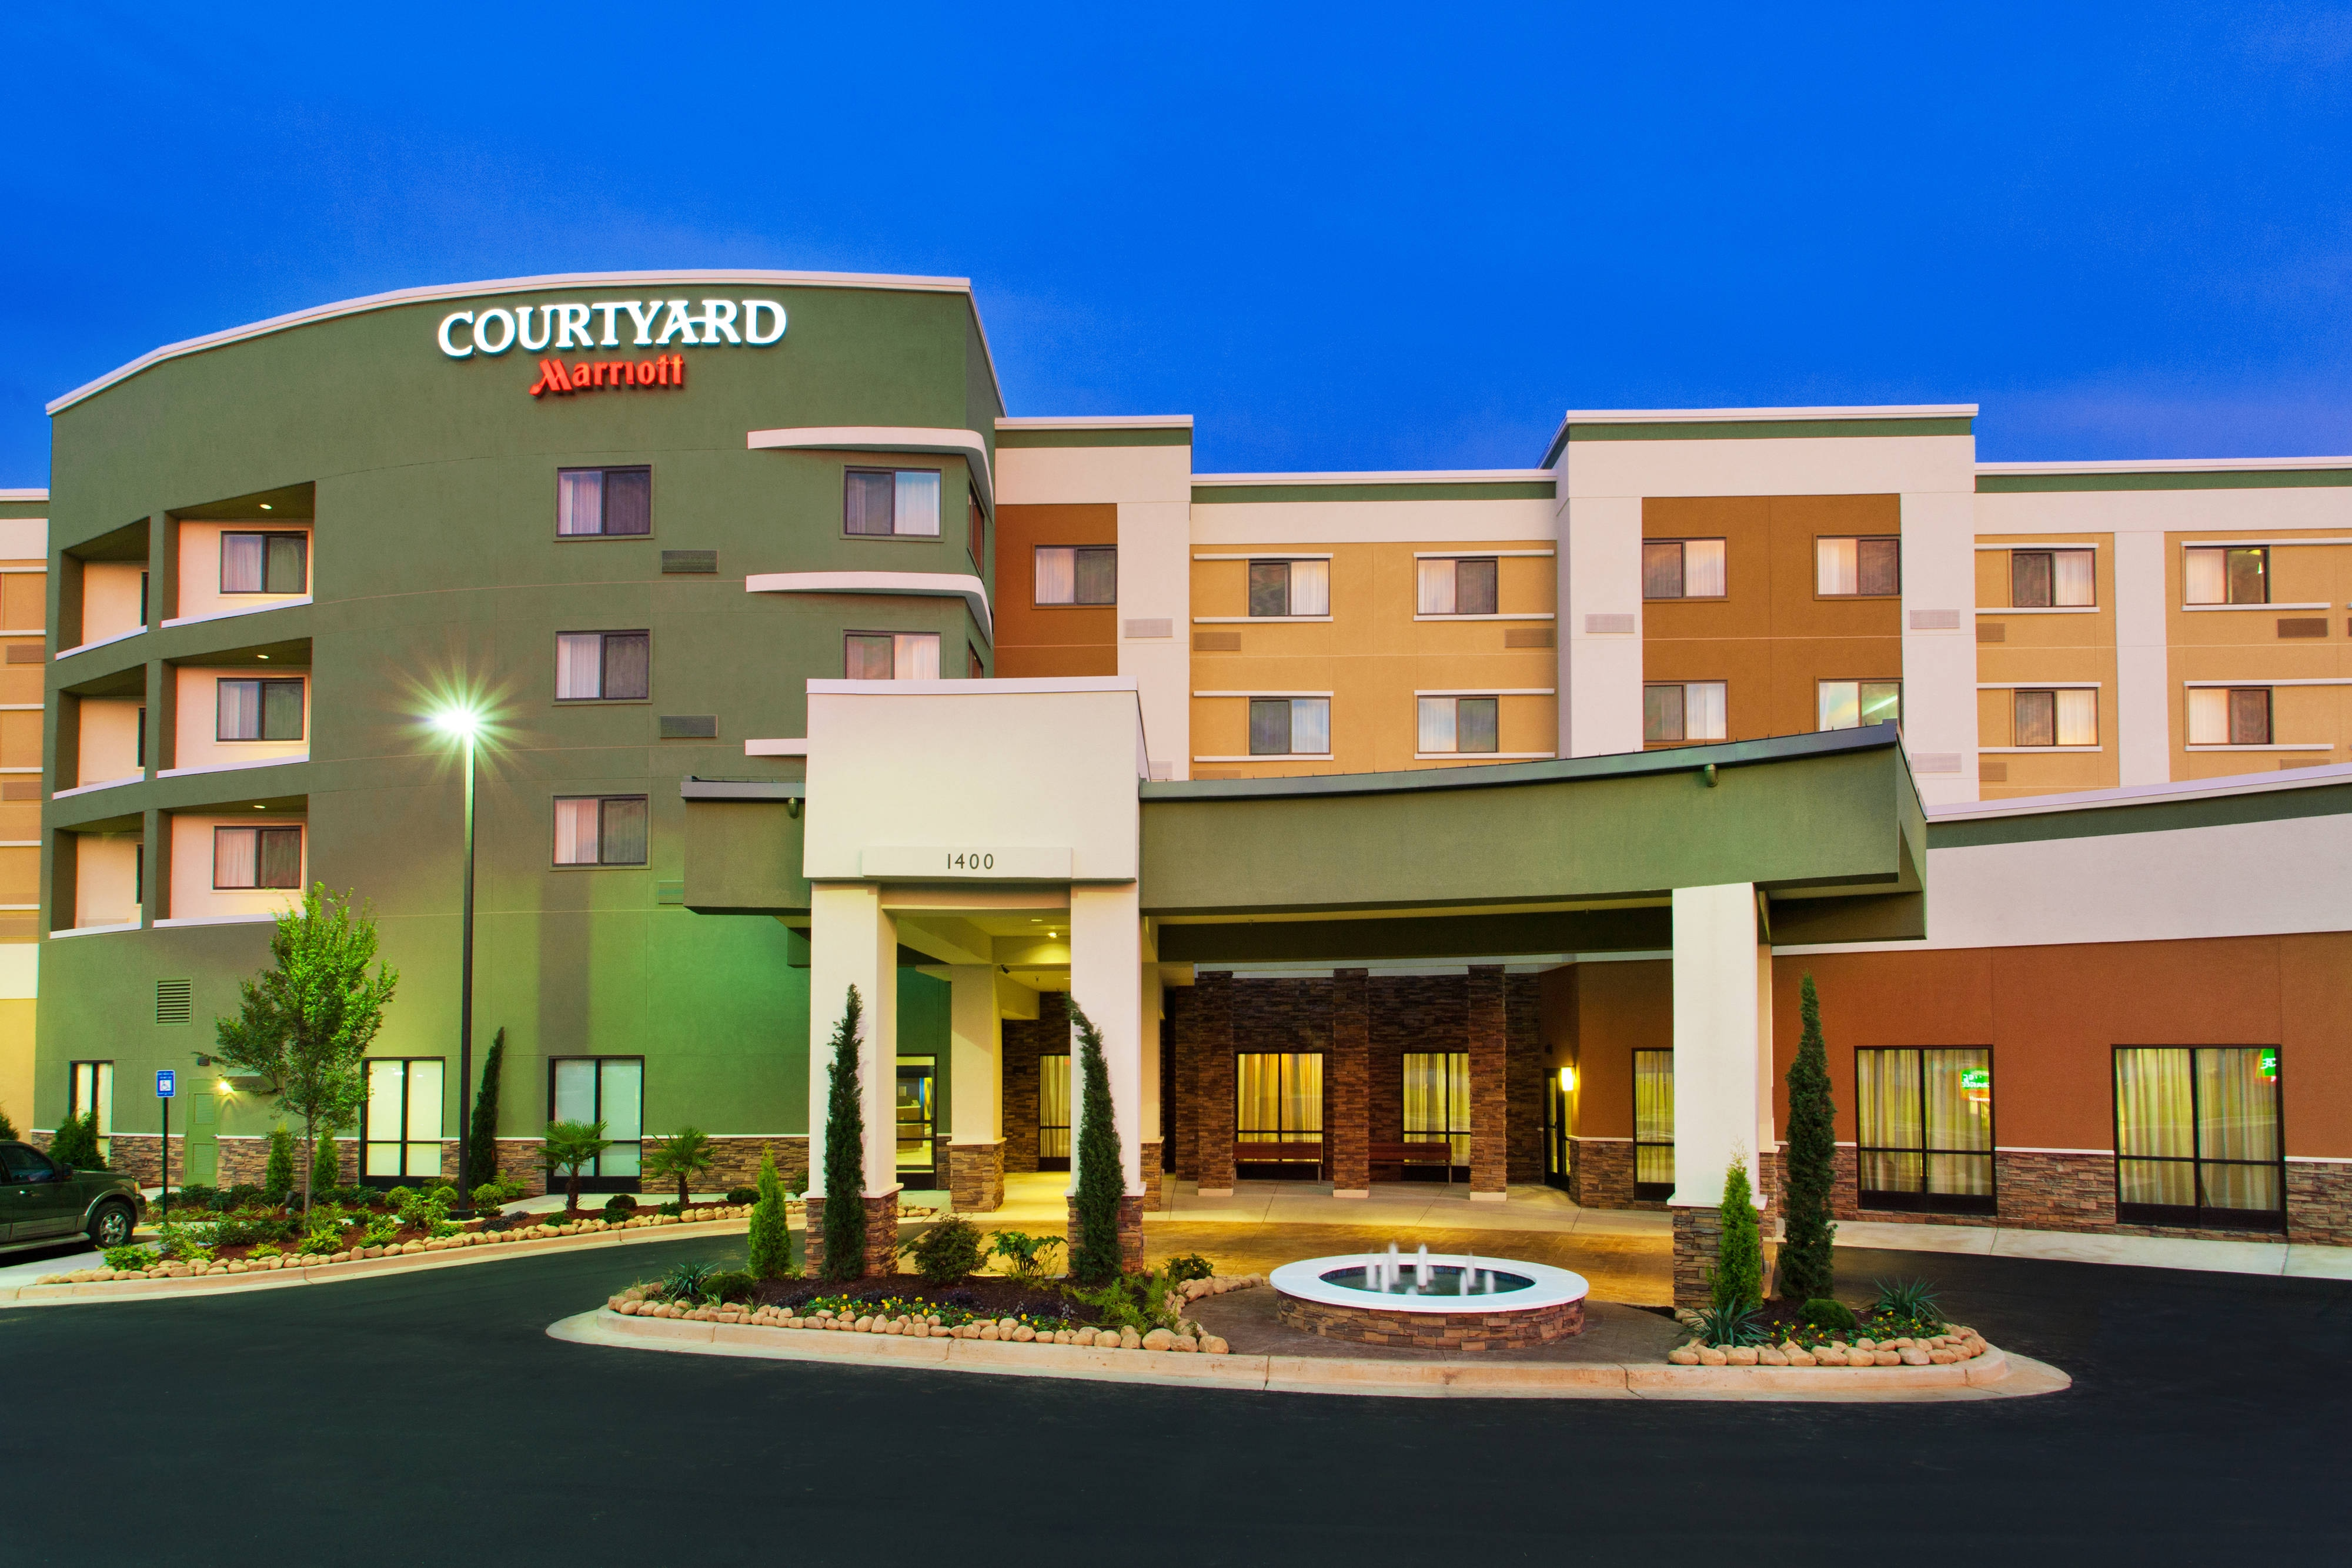 Hotel in Phenix City Alabama